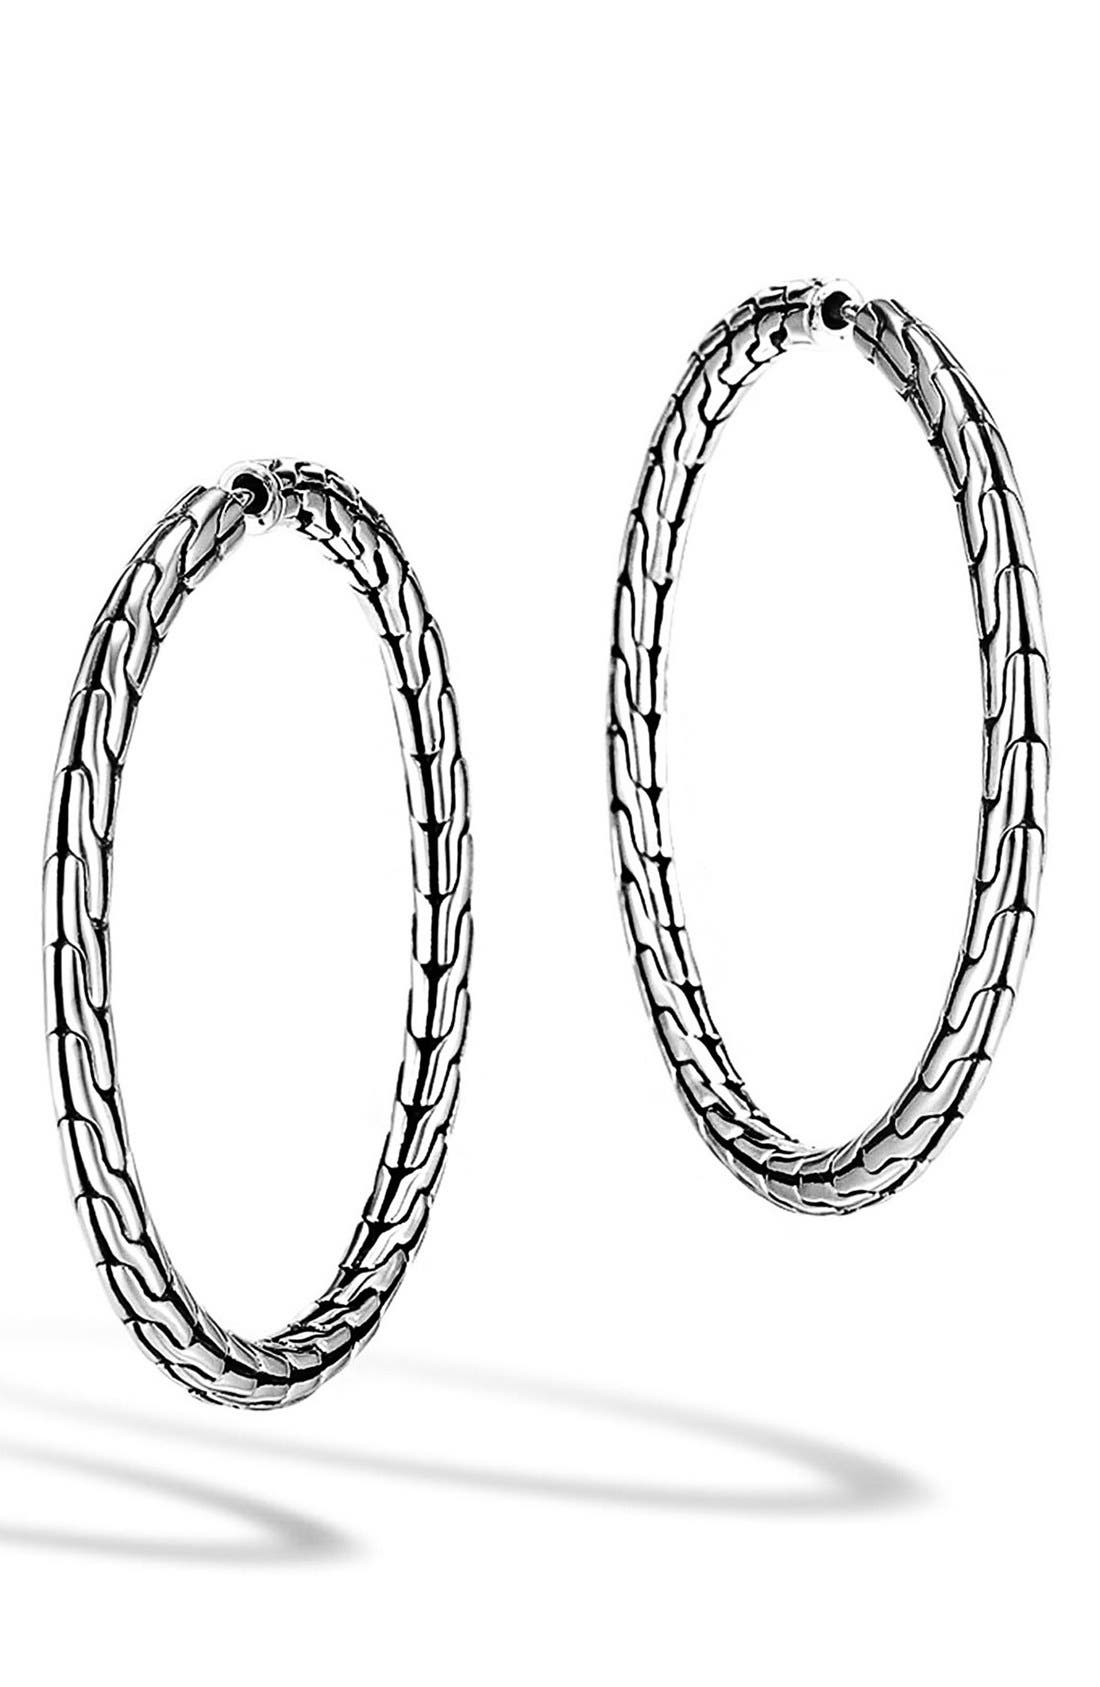 JOHN HARDY 'Classic Chain' Medium Hoop Earrings, Main, color, STERLING SILVER